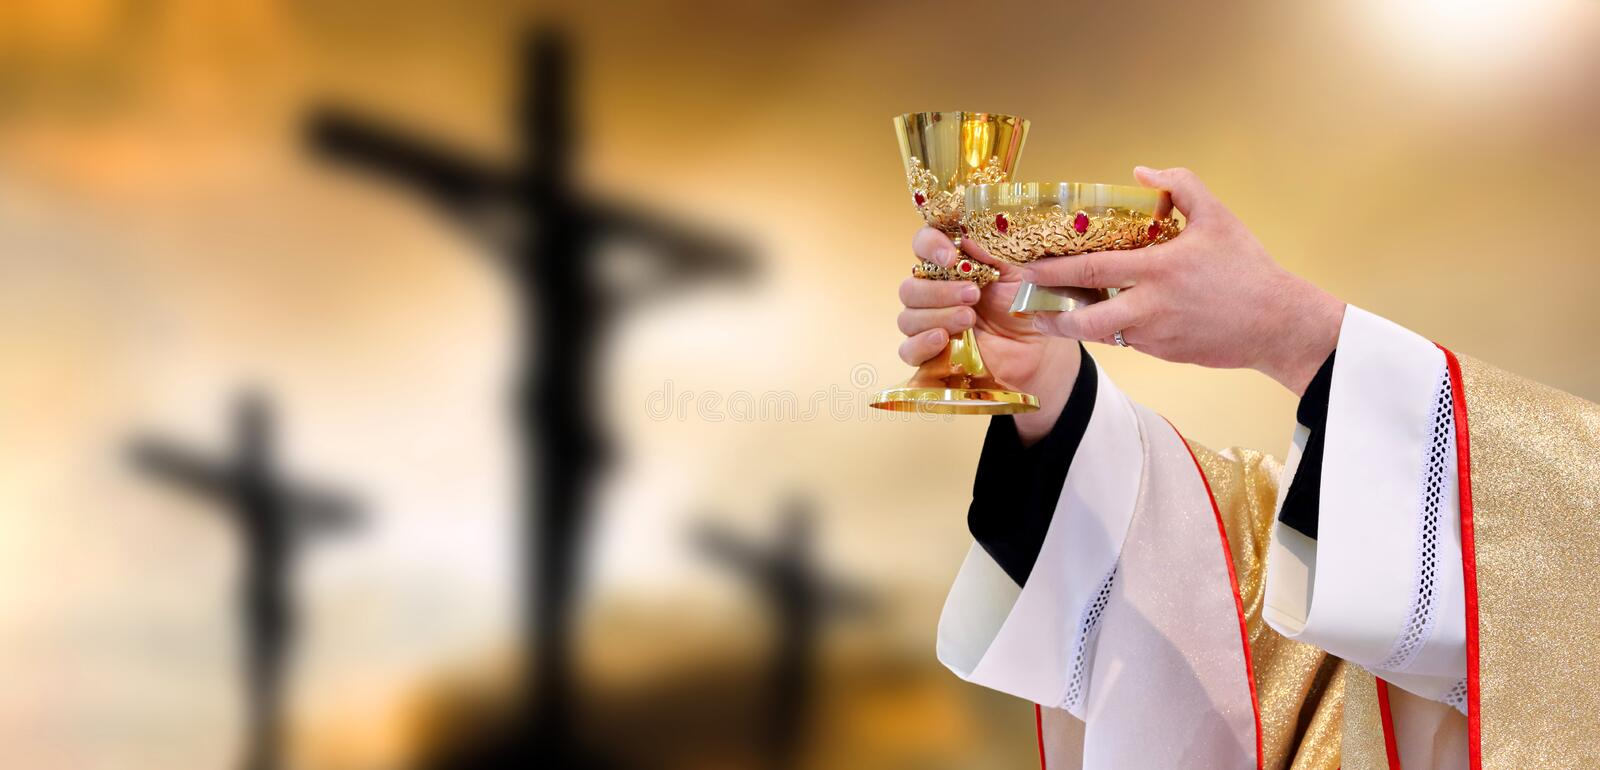 Holy communion on the background of three crosses on top of Golgotha. Easter holiday concept with empty space for text royalty free stock photo